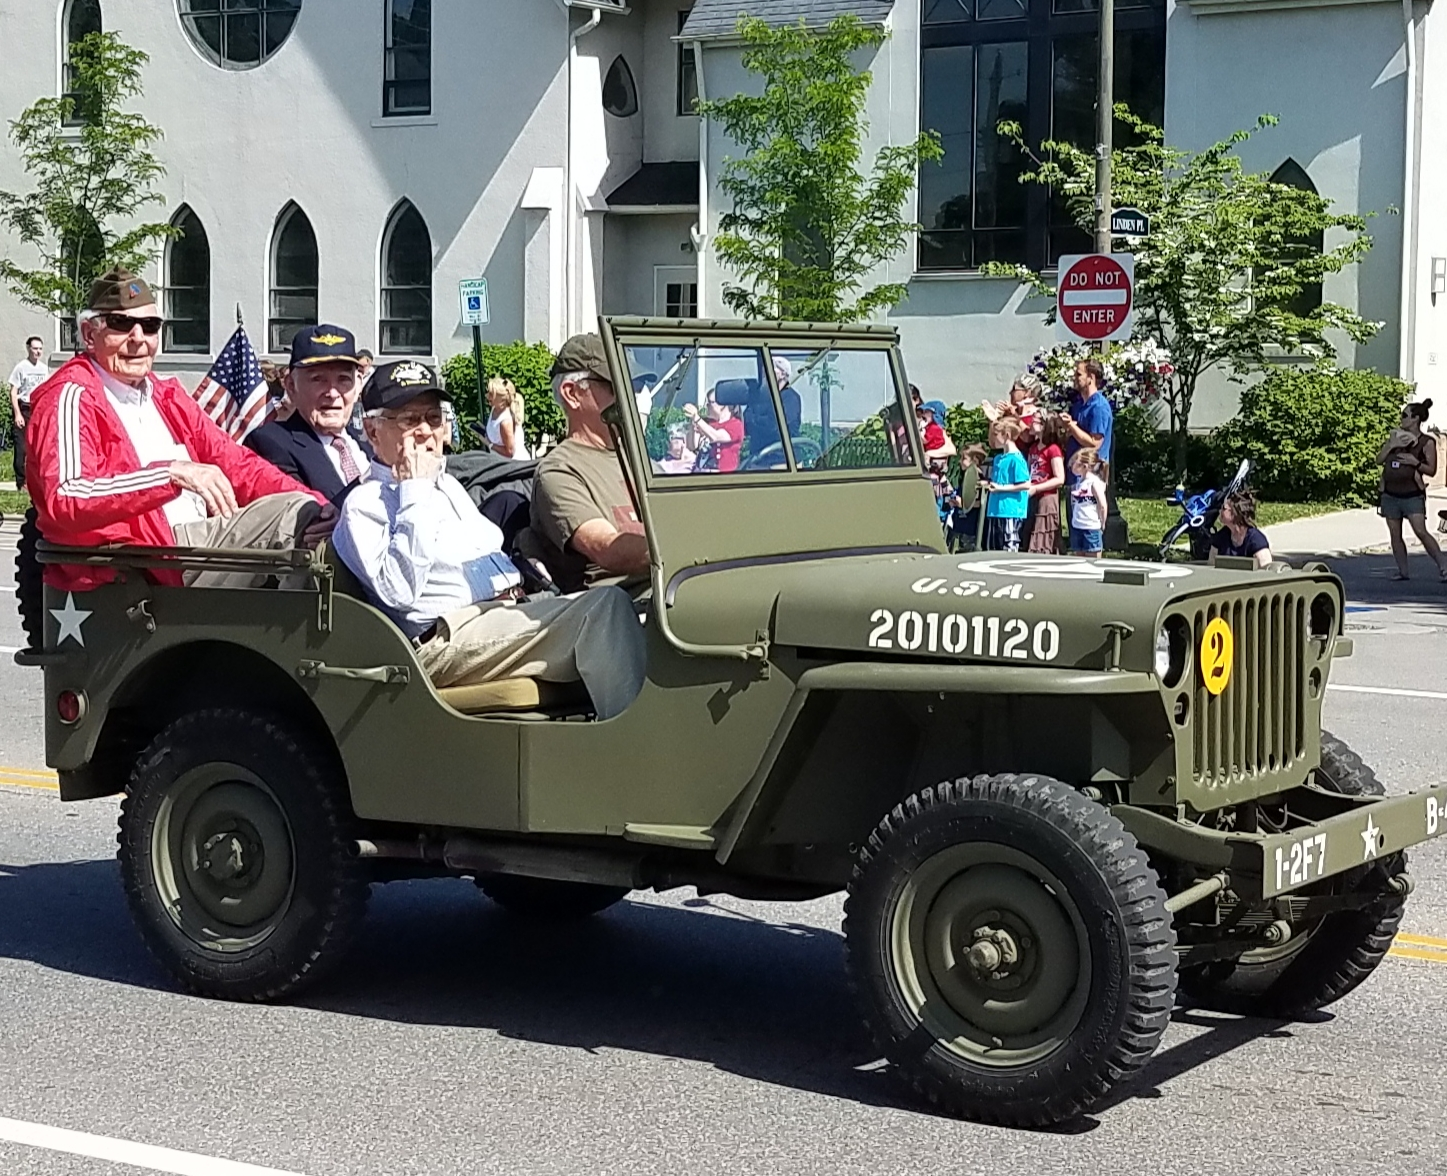 John Cassell was honored as one of Granville's Veterans and rode in the Memorial Day Parade on May 27!